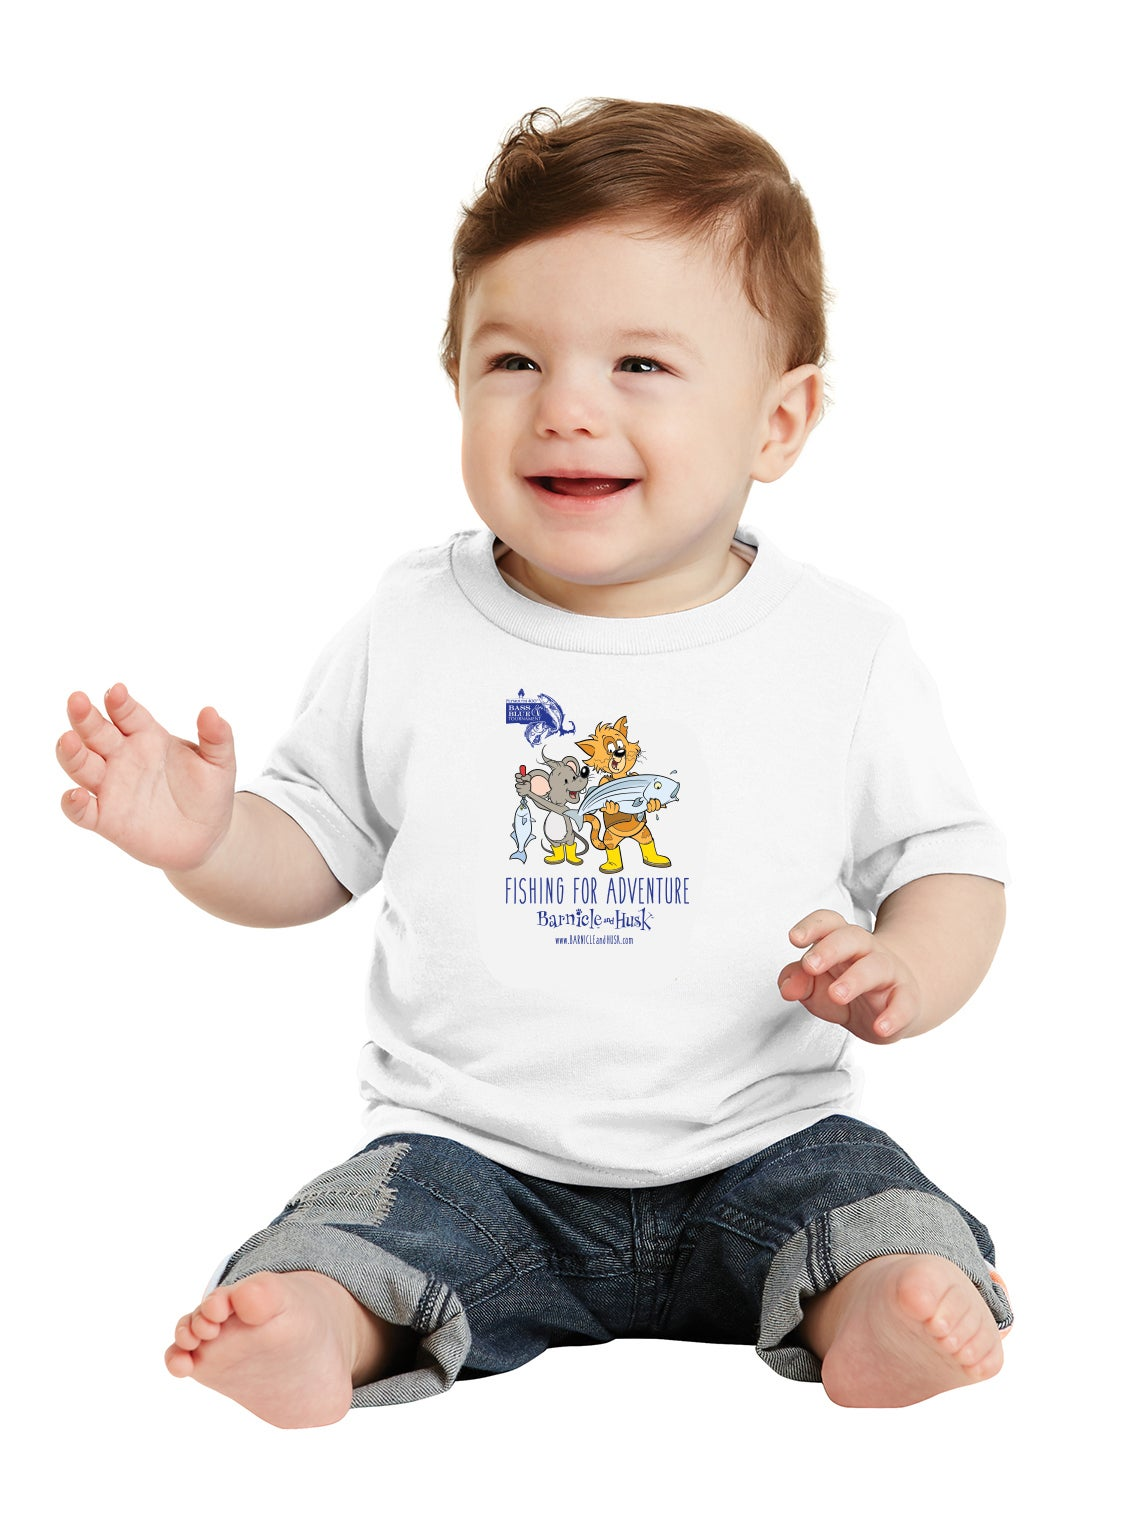 Image of Toddler Fishing Shirt